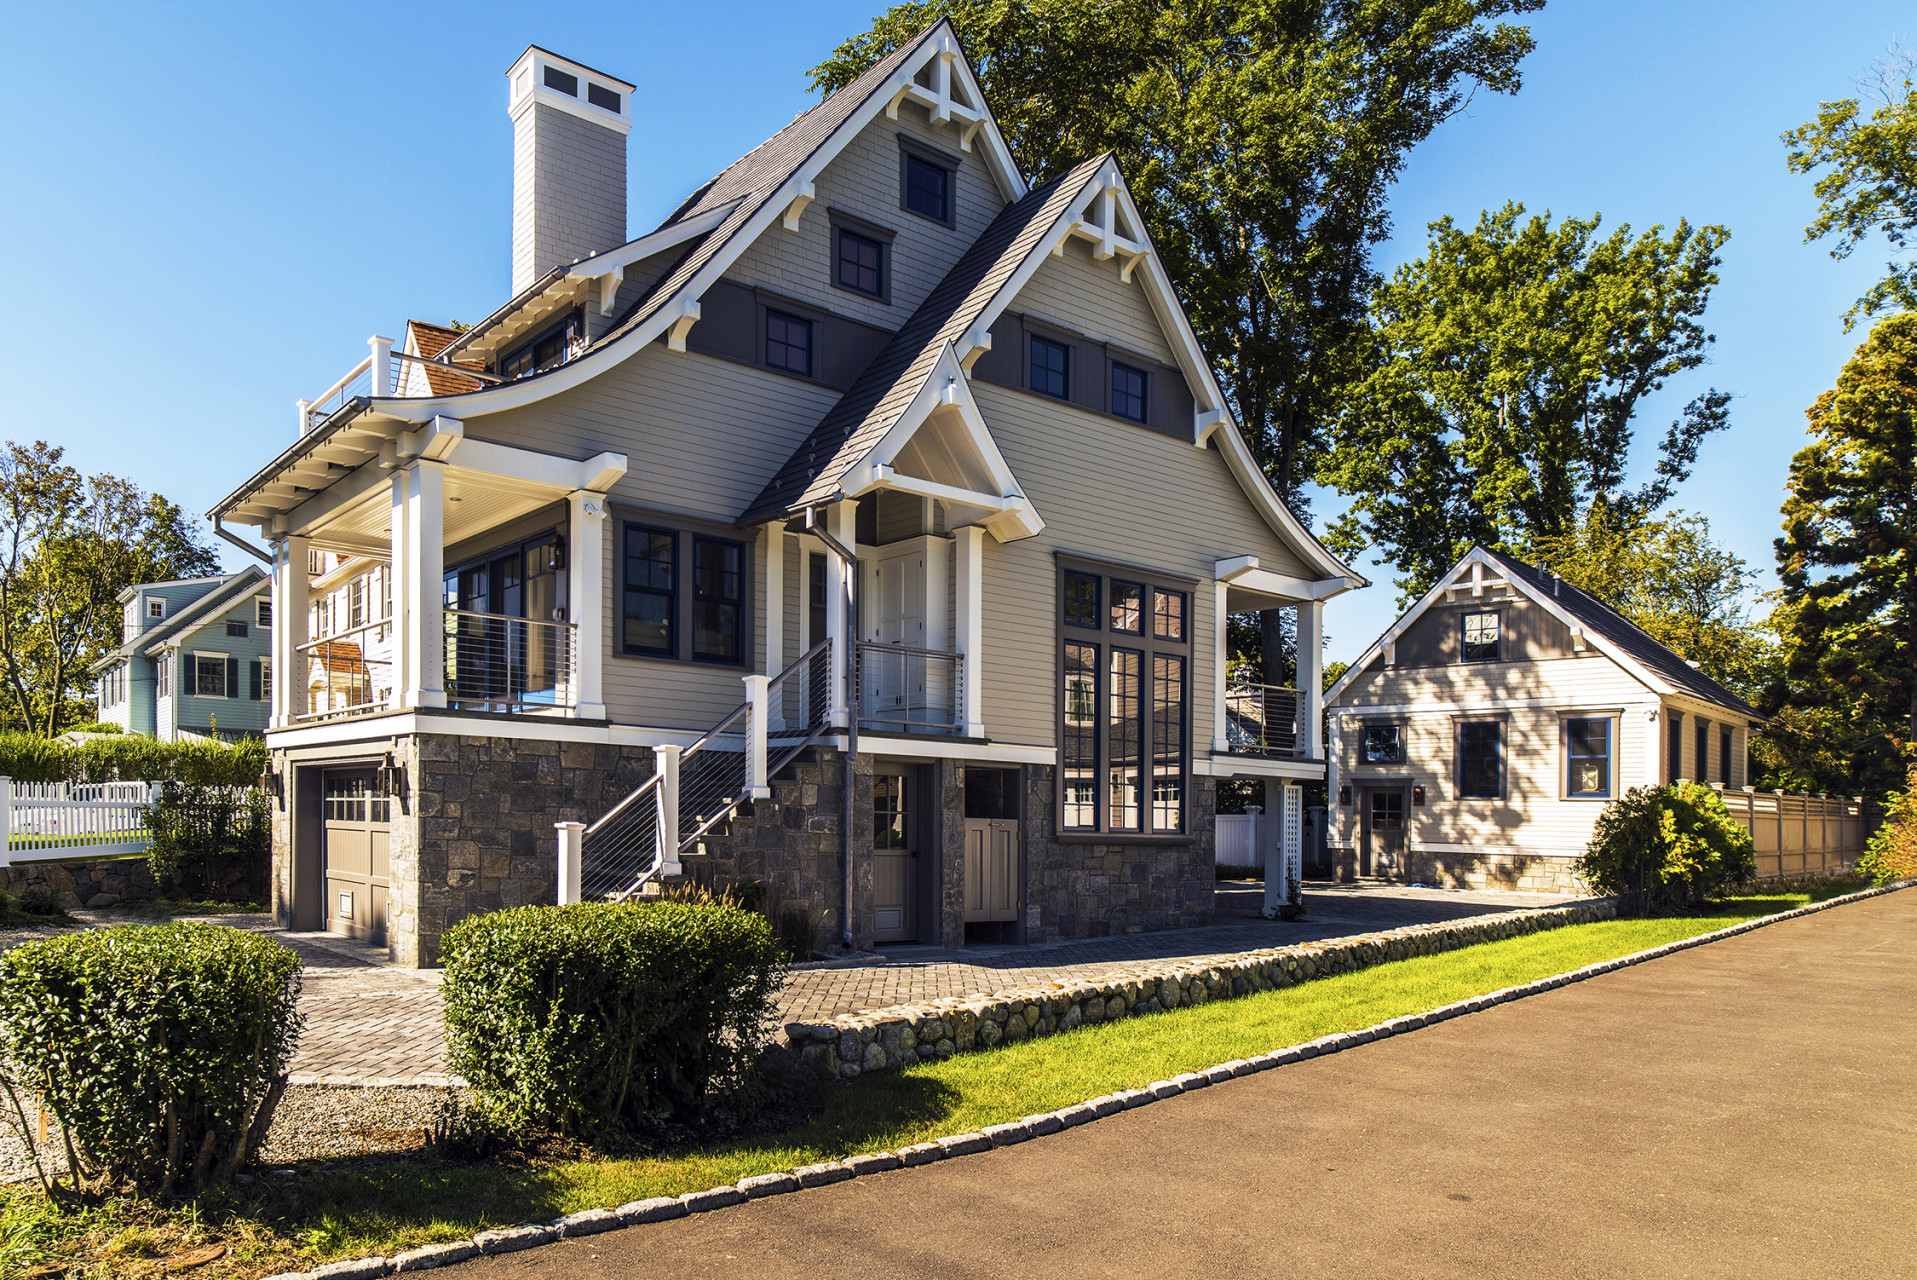 Darien-connecticut-ct-residential-shingle-style-cottage-roof-fairfield